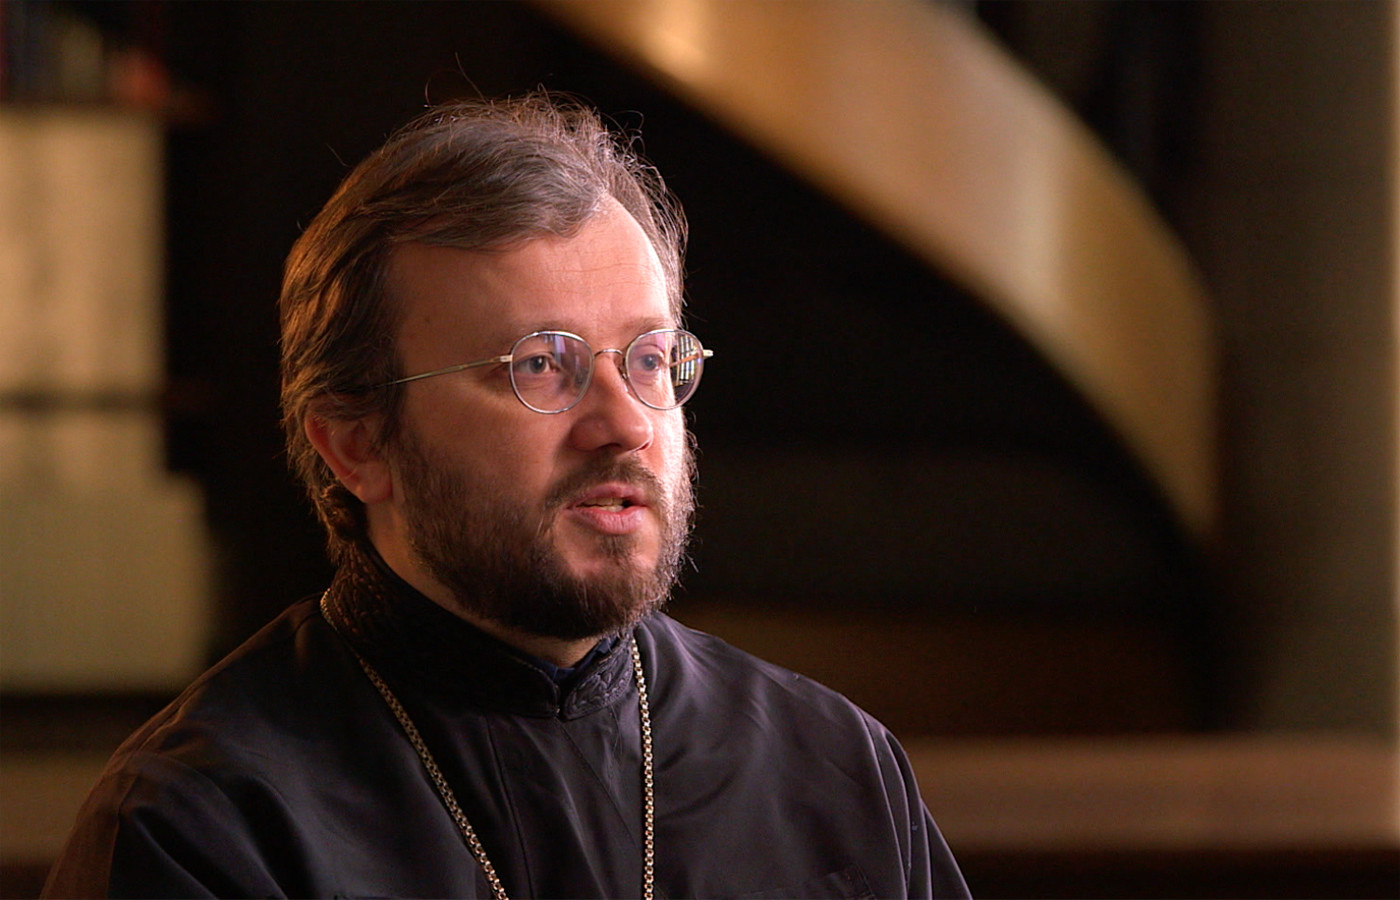 Archimandrite Cyril Hovorun, interviewee on John Paul 2: Liberating a Continent, the fall of Communism.